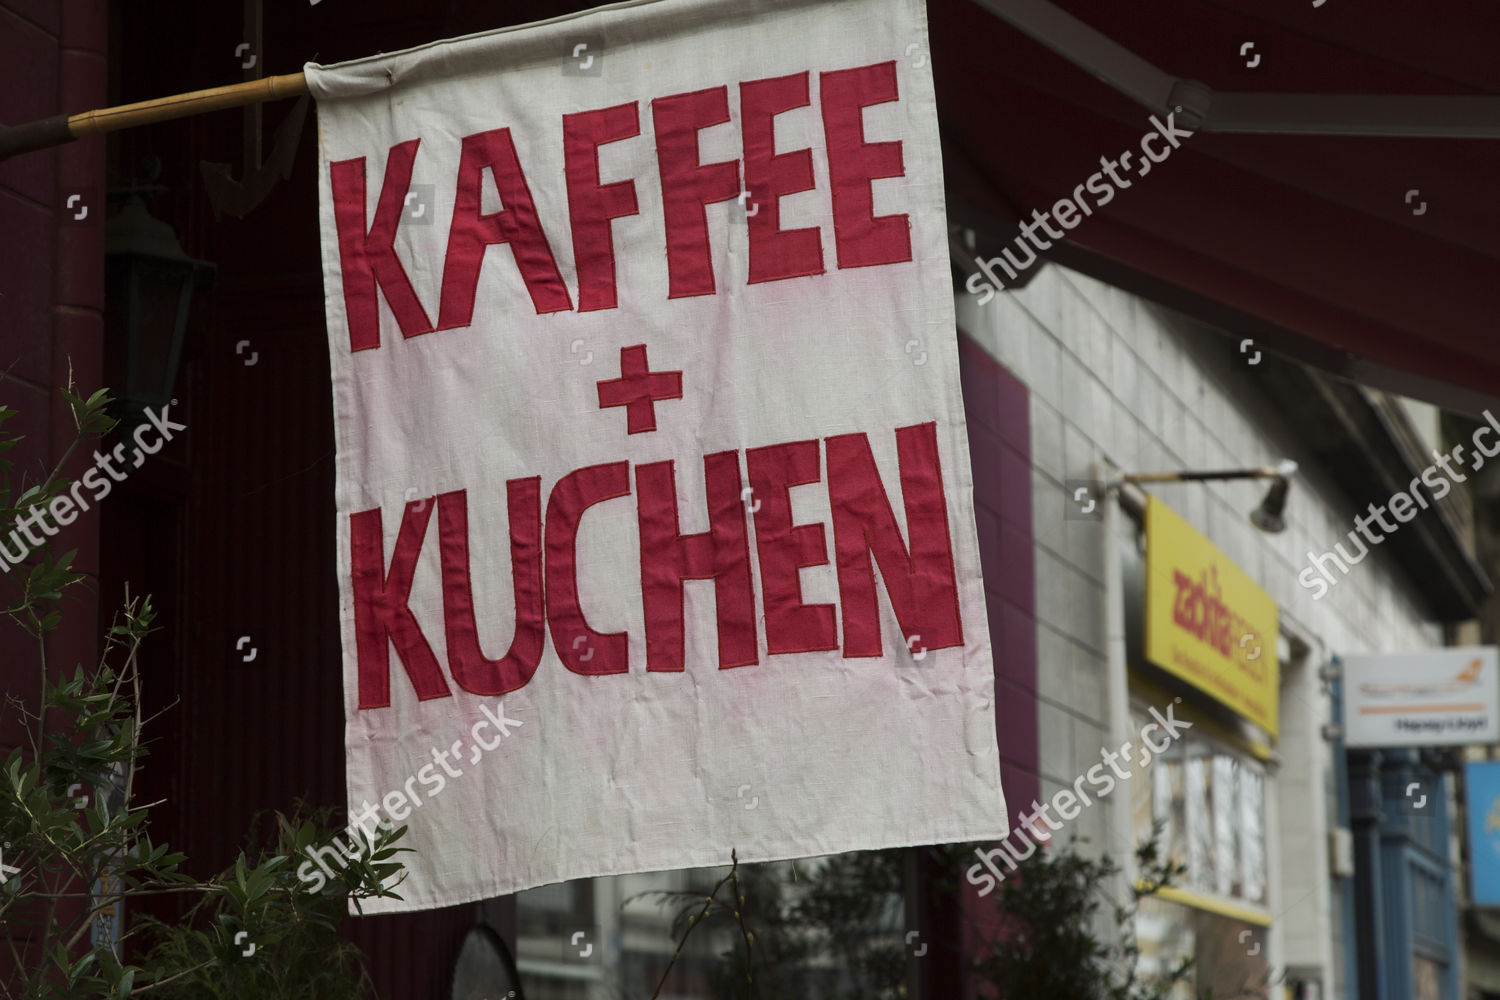 Kuchen Hamburg Flag Advertising Kaffee Und Kuchen Coffee Cake Stock Photo